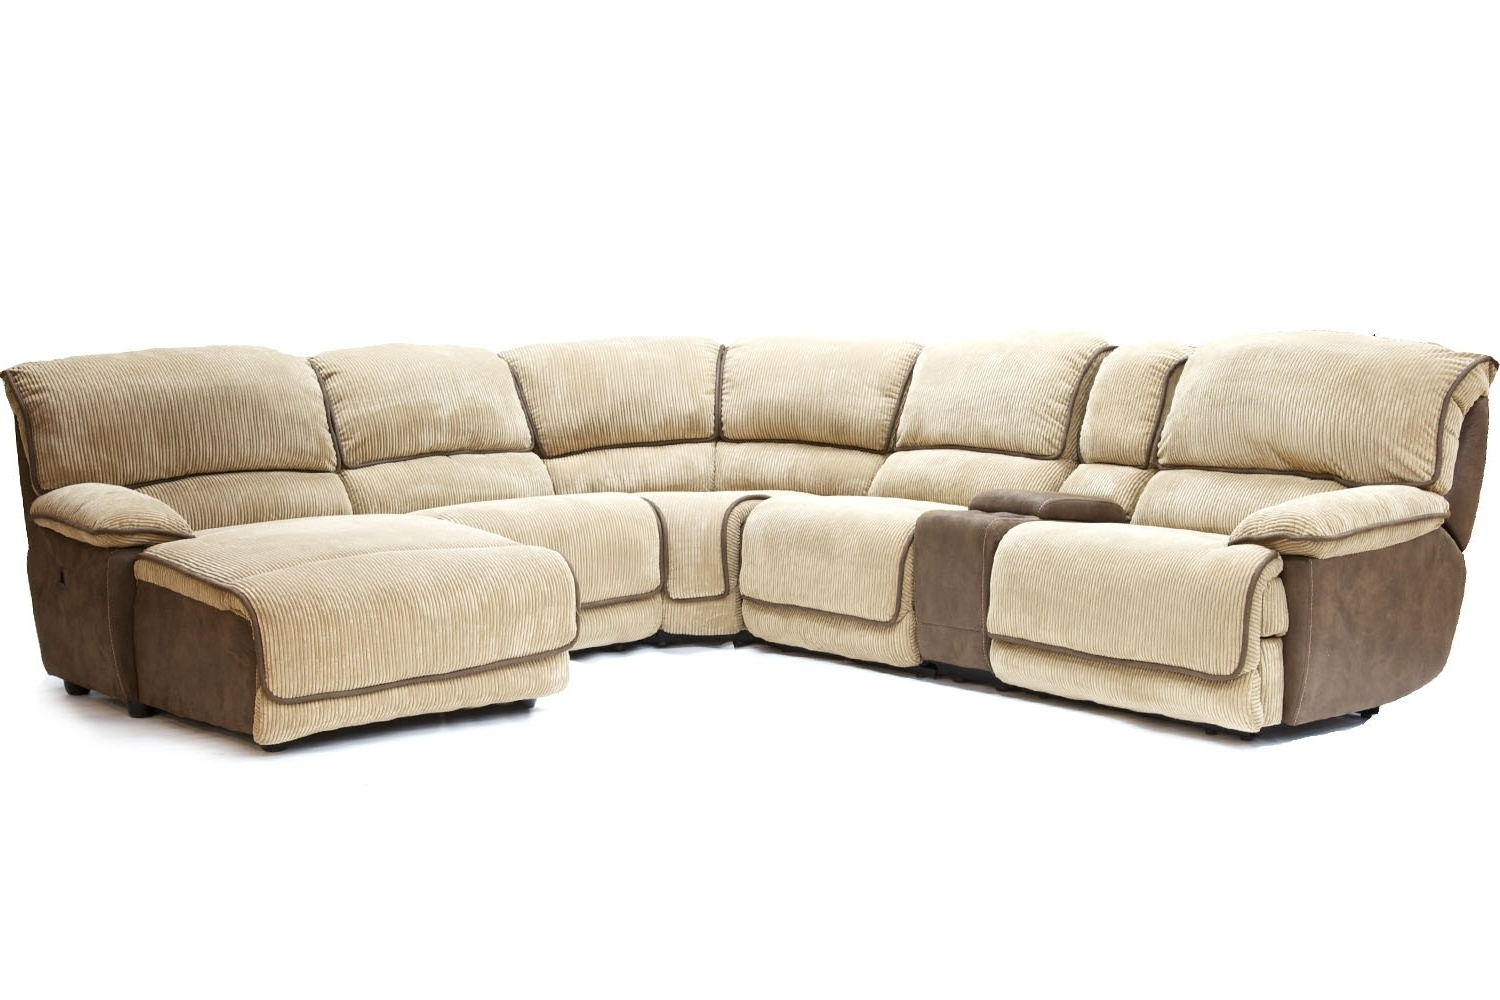 Gallery Austin Sectional Sofa – Mediasupload Within Well Liked Austin Sectional Sofas (View 2 of 20)